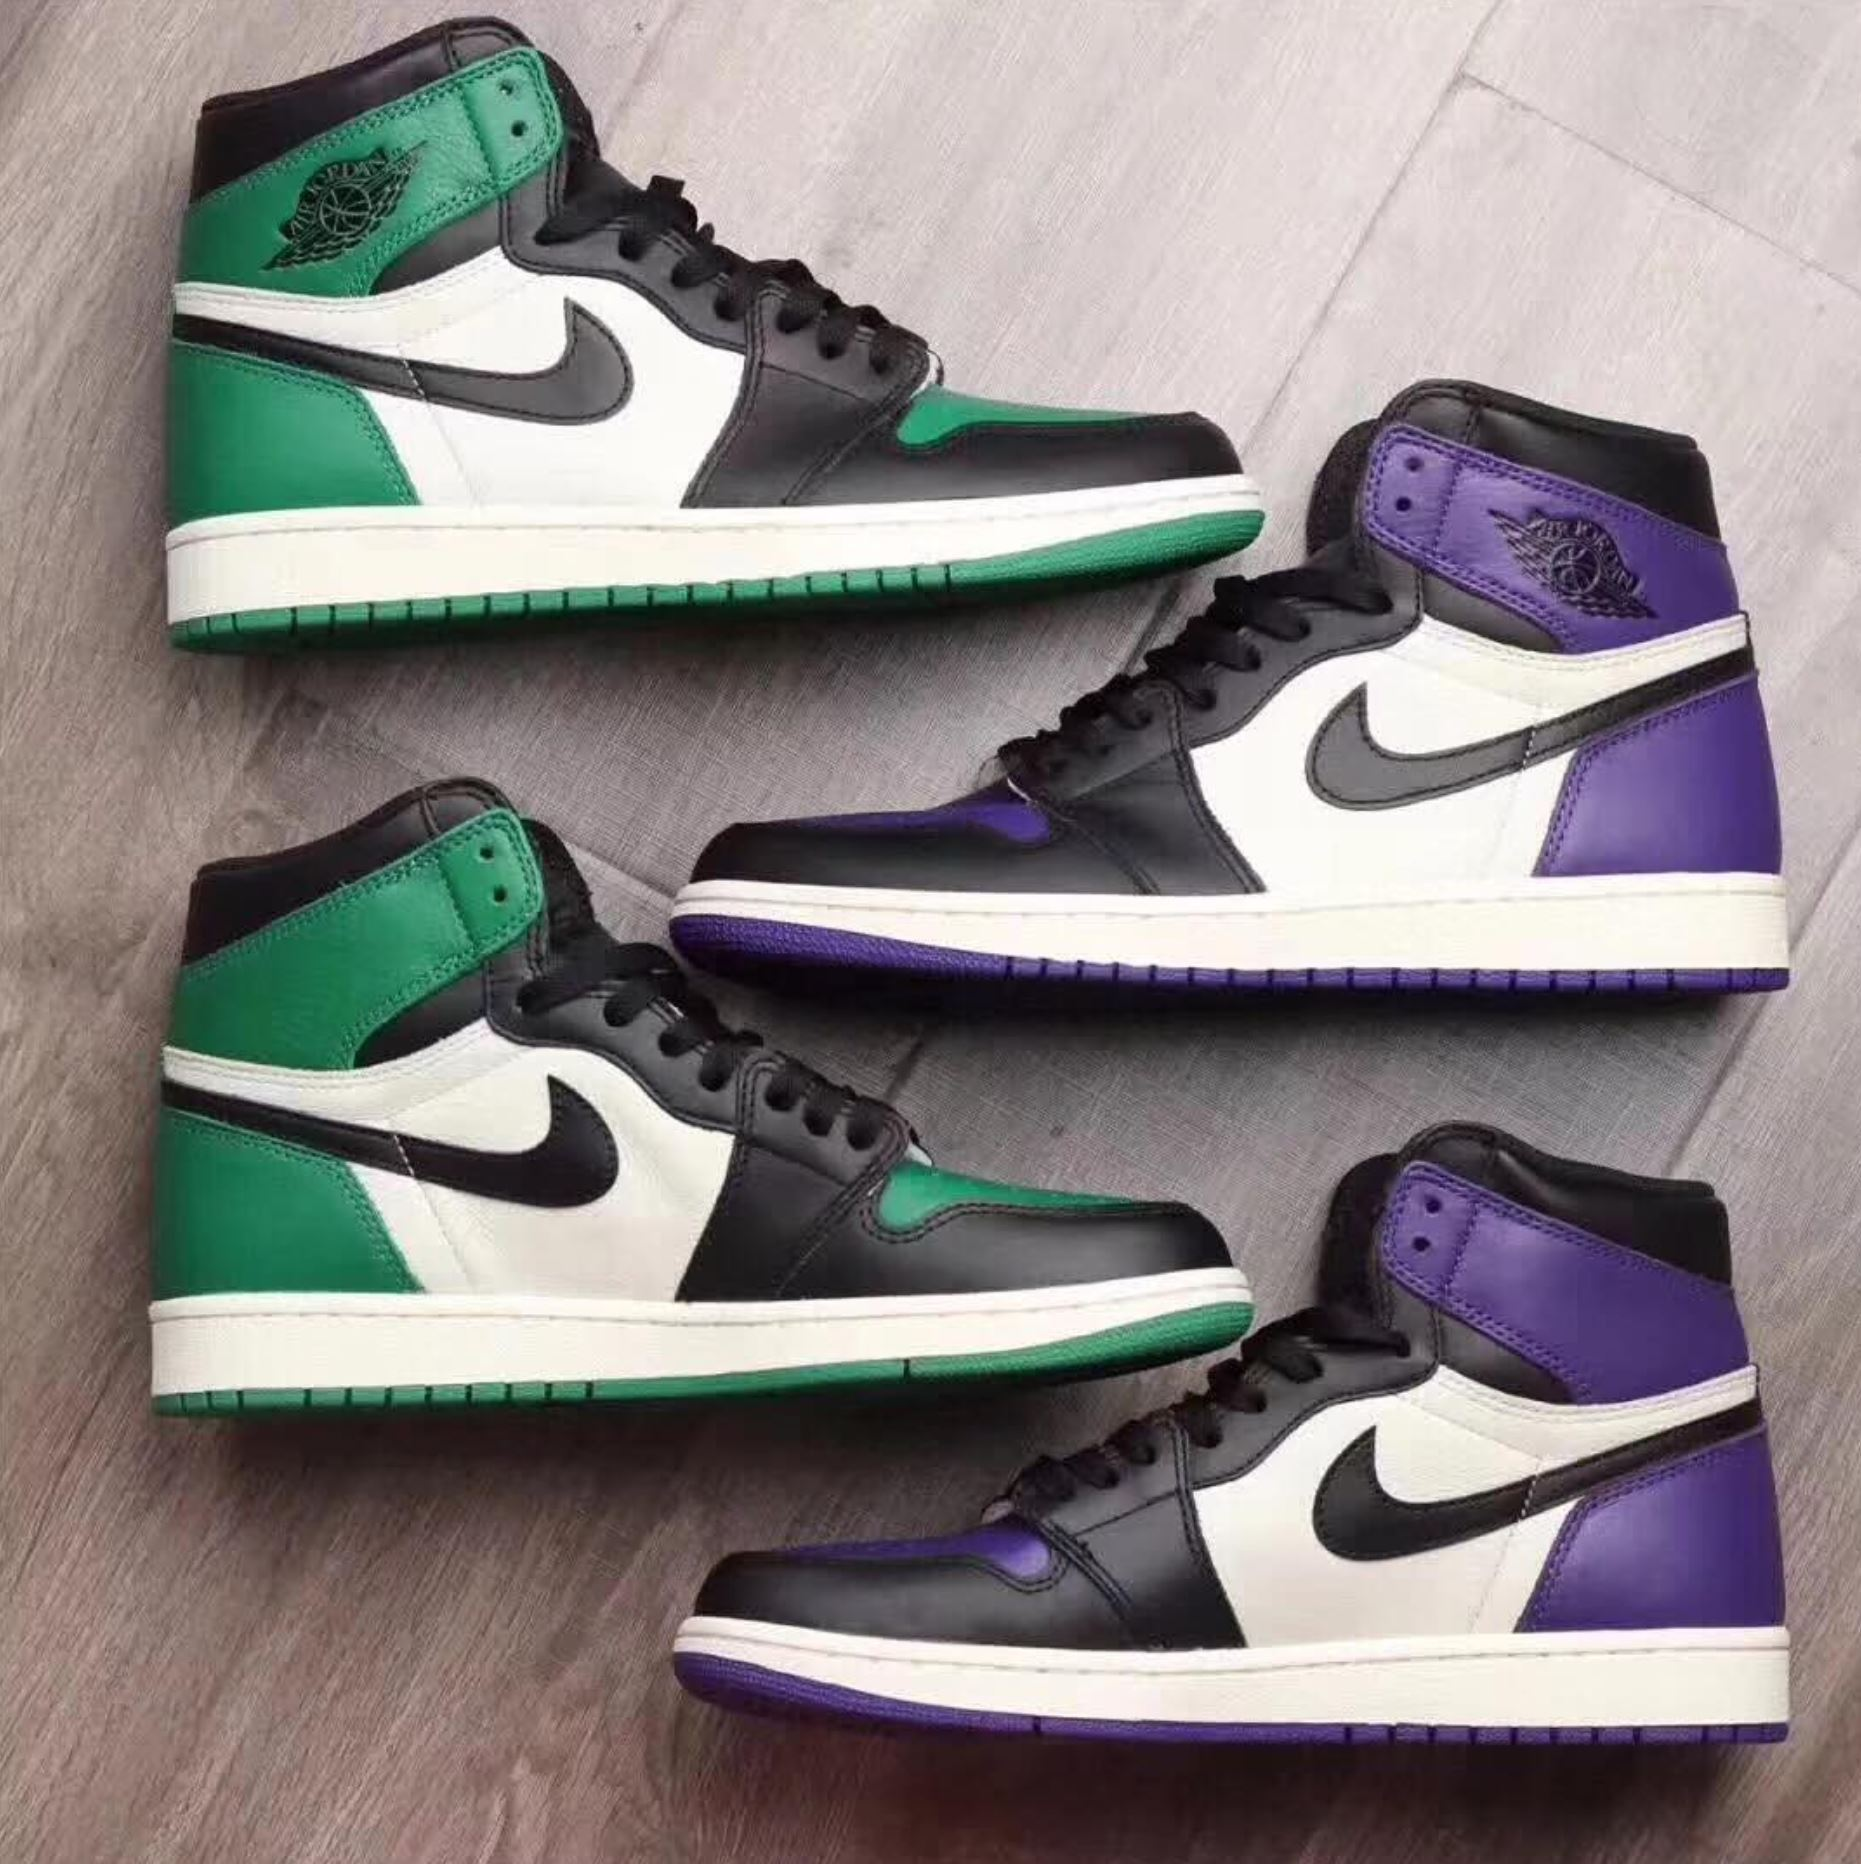 65e8ce7e8e5581 air jordan 1 court purple pine green - WearTesters